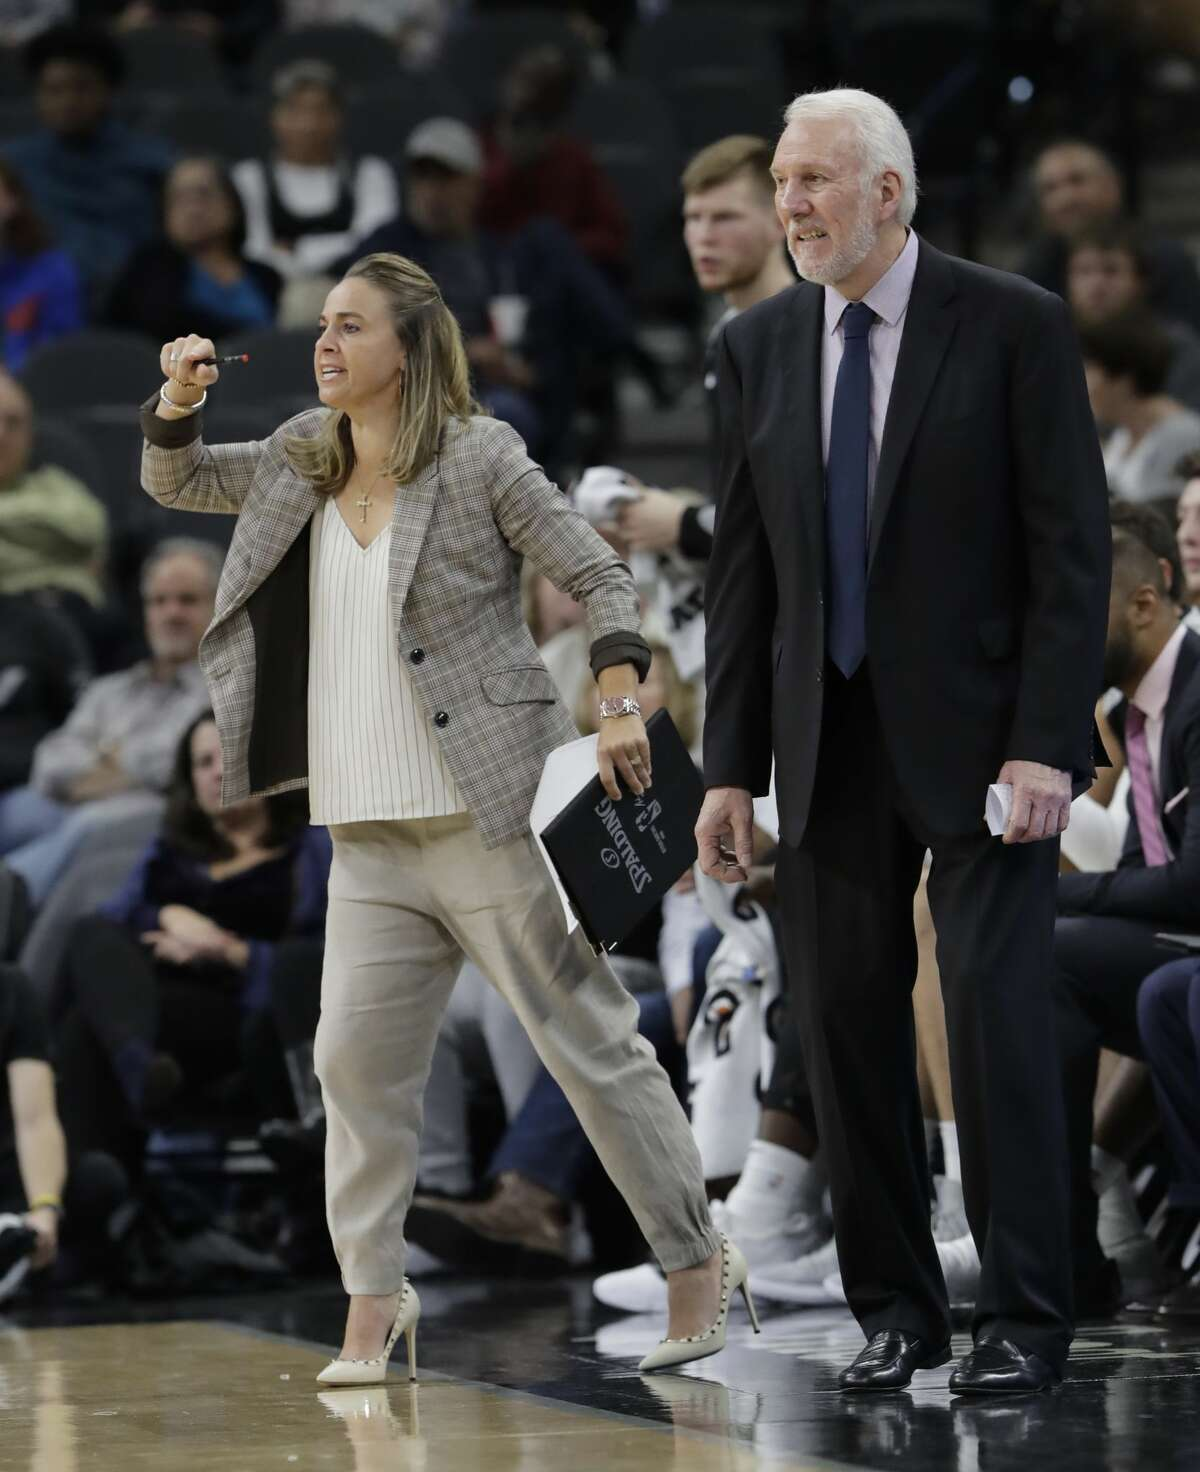 San Antonio Spurs head coach Gregg Popovich, right, and assistant coach Becky Hammon, left, during the second half of an NBA basketball game against the Minnesota Timberwolves, Wednesday, Oct. 17, 2018, in San Antonio. San Antonio won 112-108. (AP Photo/Eric Gay)